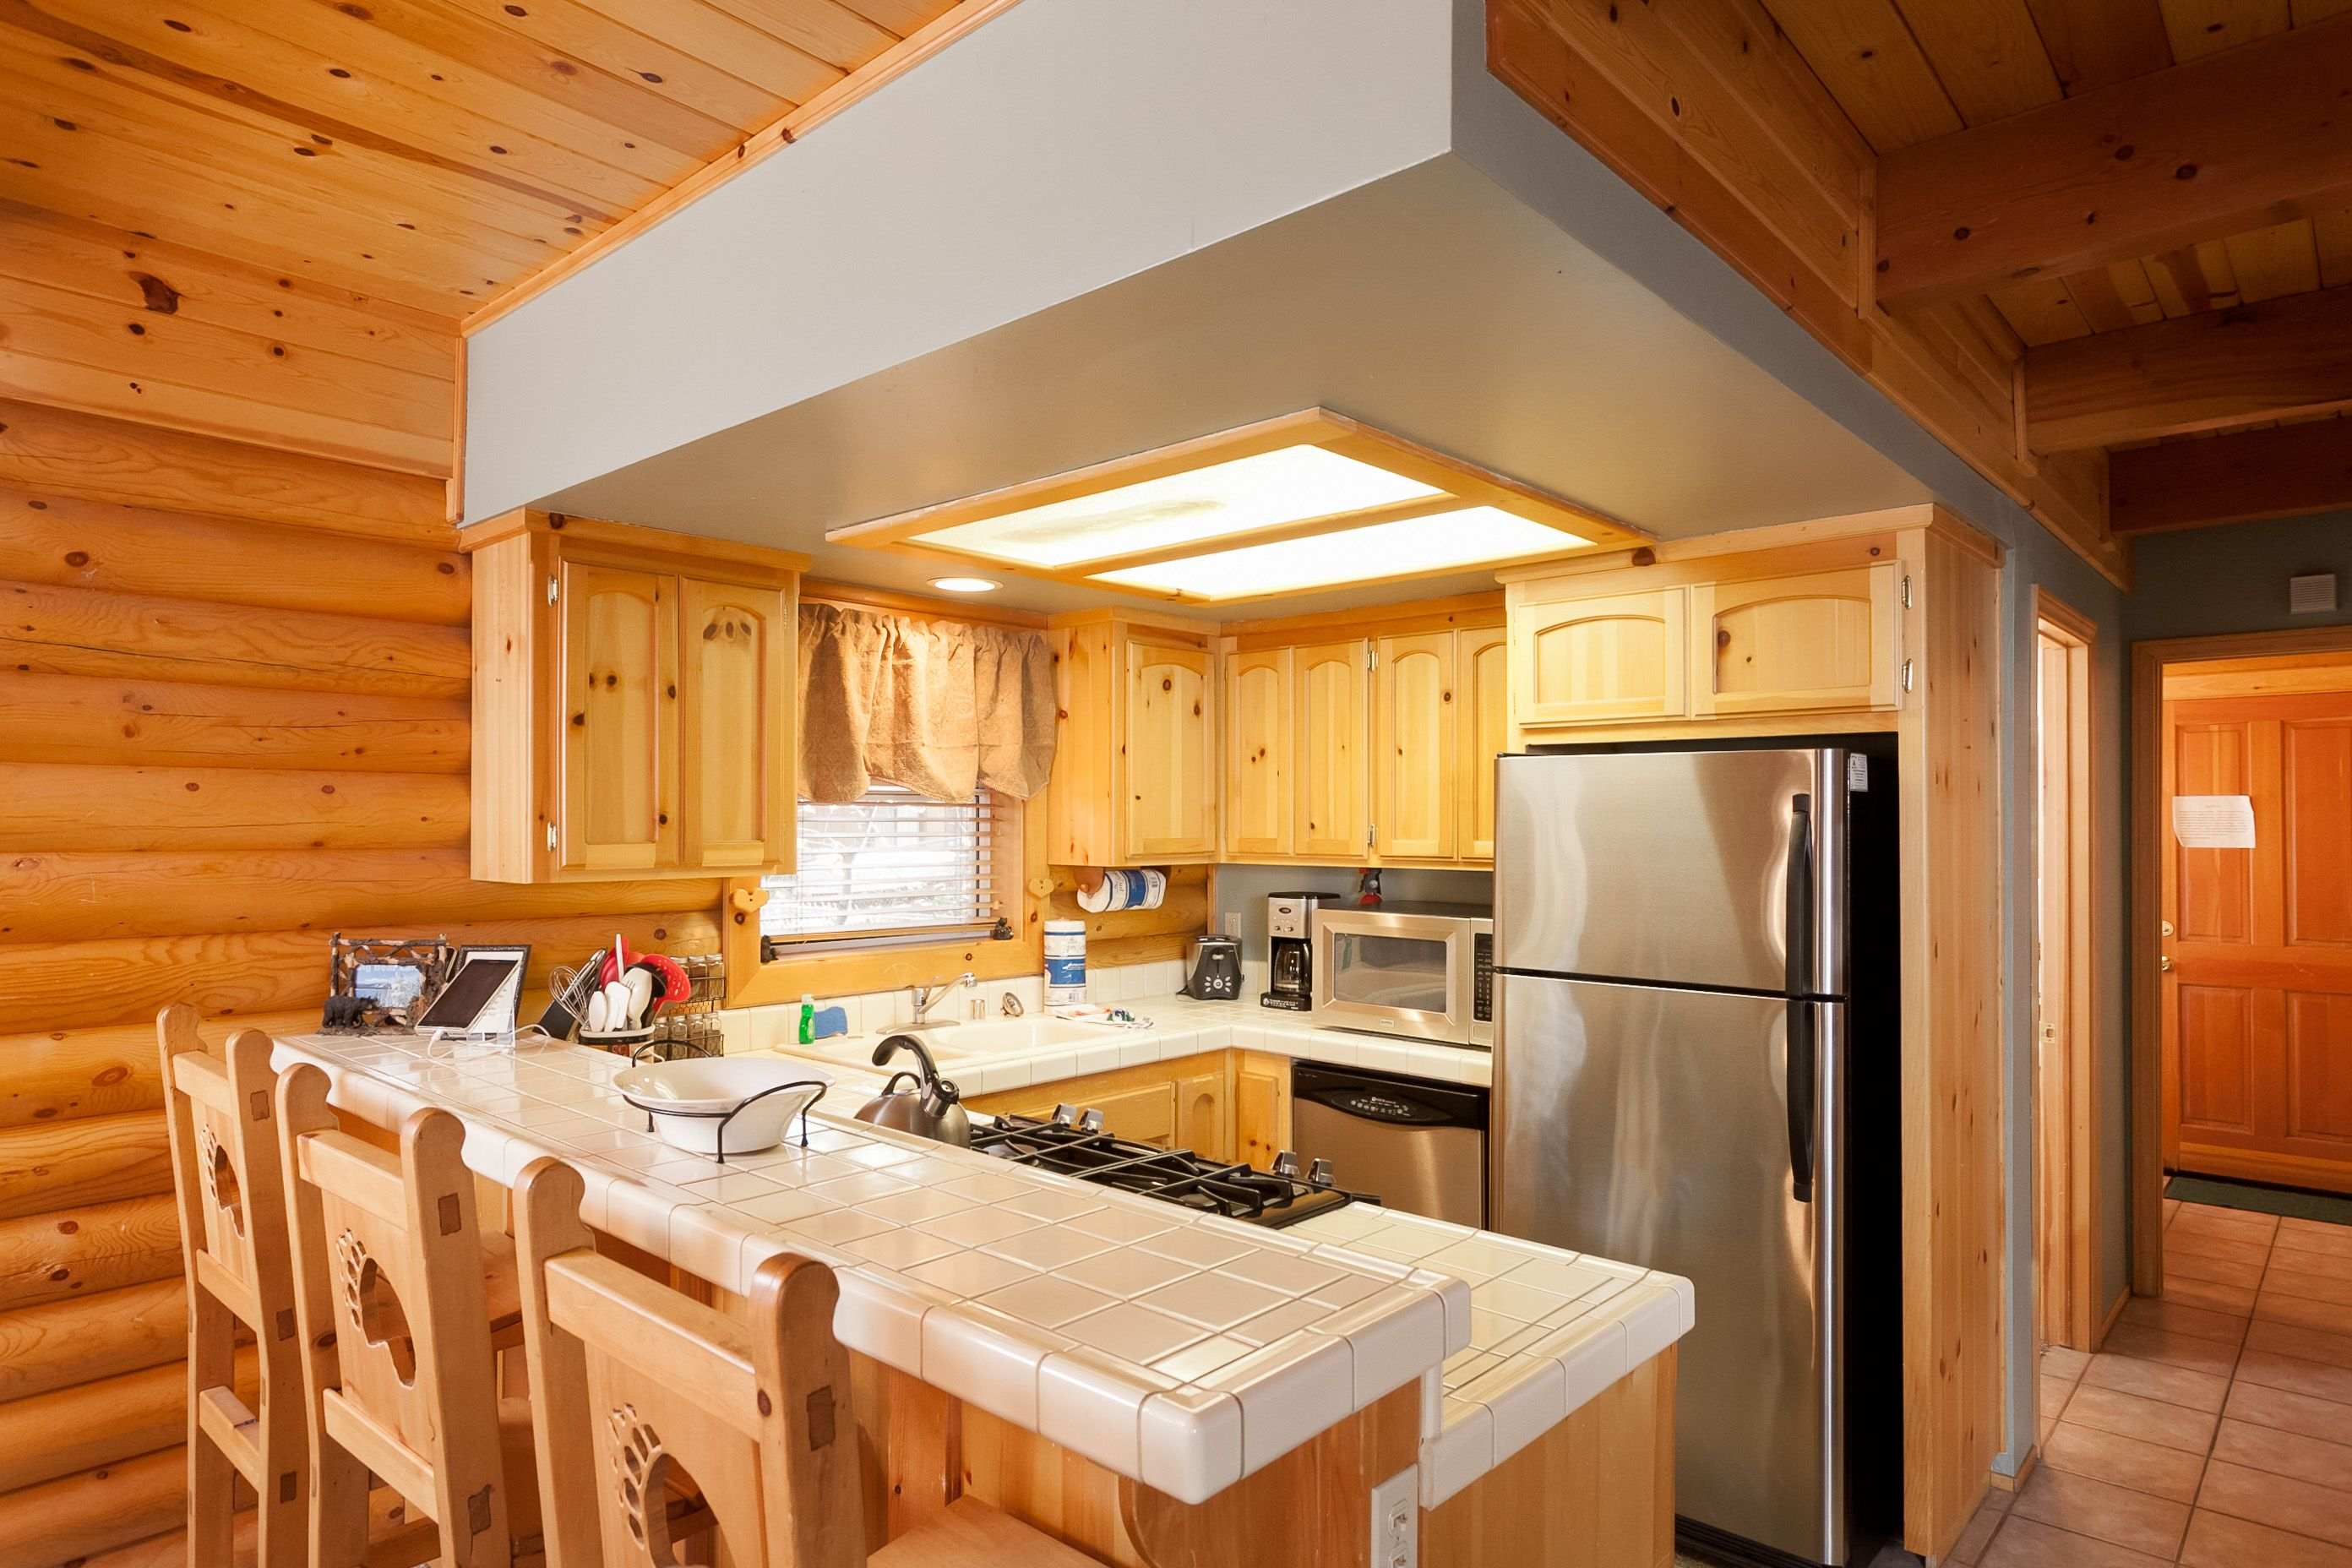 Cute Kitchen With Knotty Pine Cabinets Log Cabin Coziness In Big